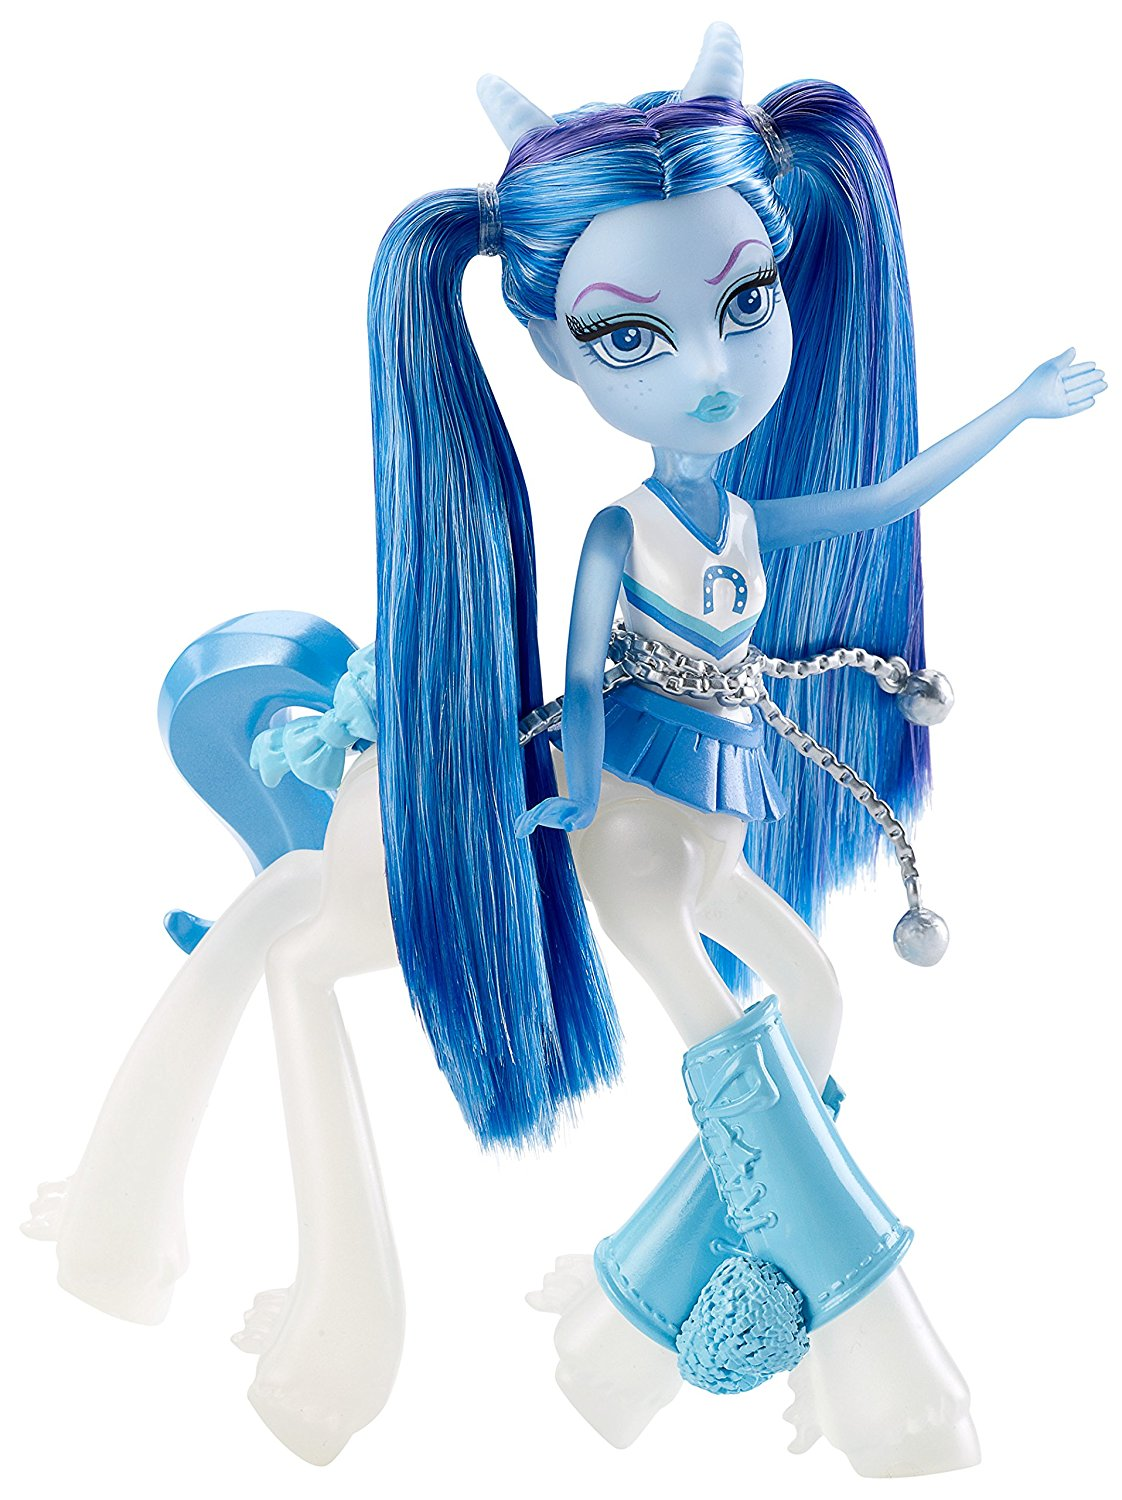 Кукла-кентавр Monster High Fright-Mares - Skyra BouncegaitКуклы Ever After High и Monster High<br>Кукла-кентавр Monster High Fright-Mares - Skyra Bouncegait<br>